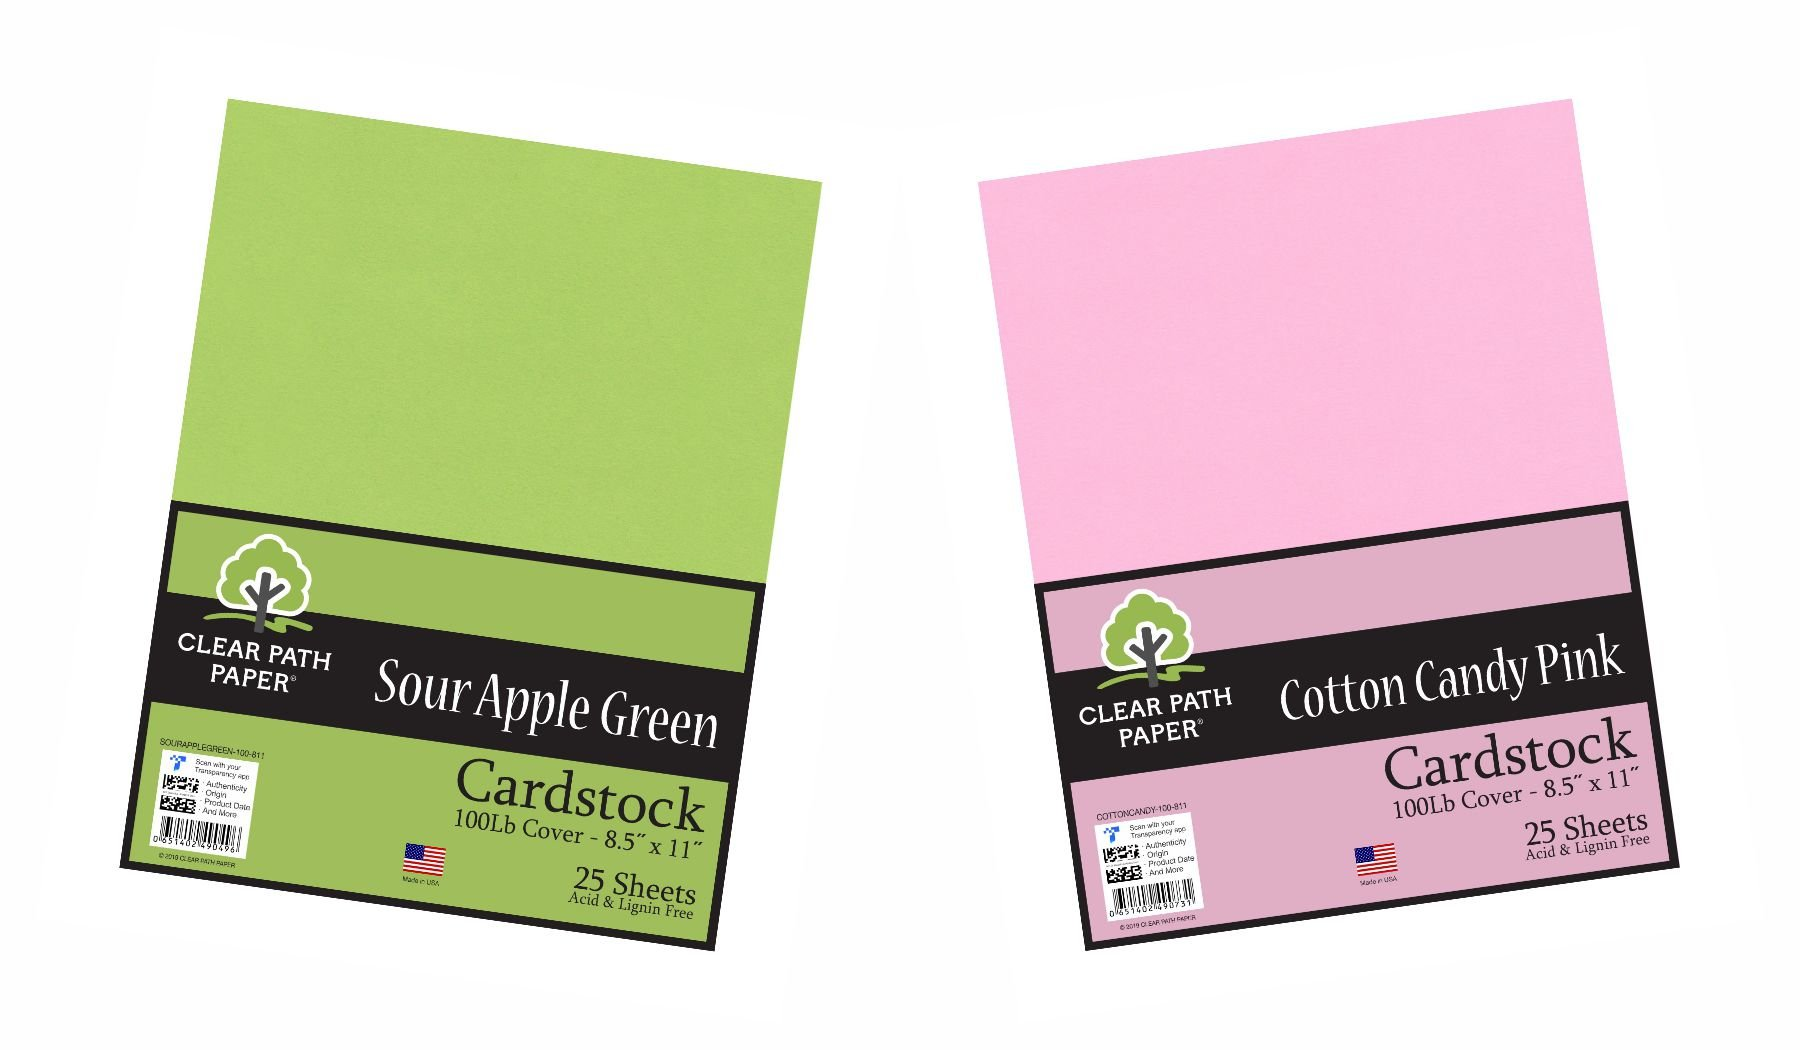 Image of the Sour Apple Green + Cotton Candy Pink Bundle